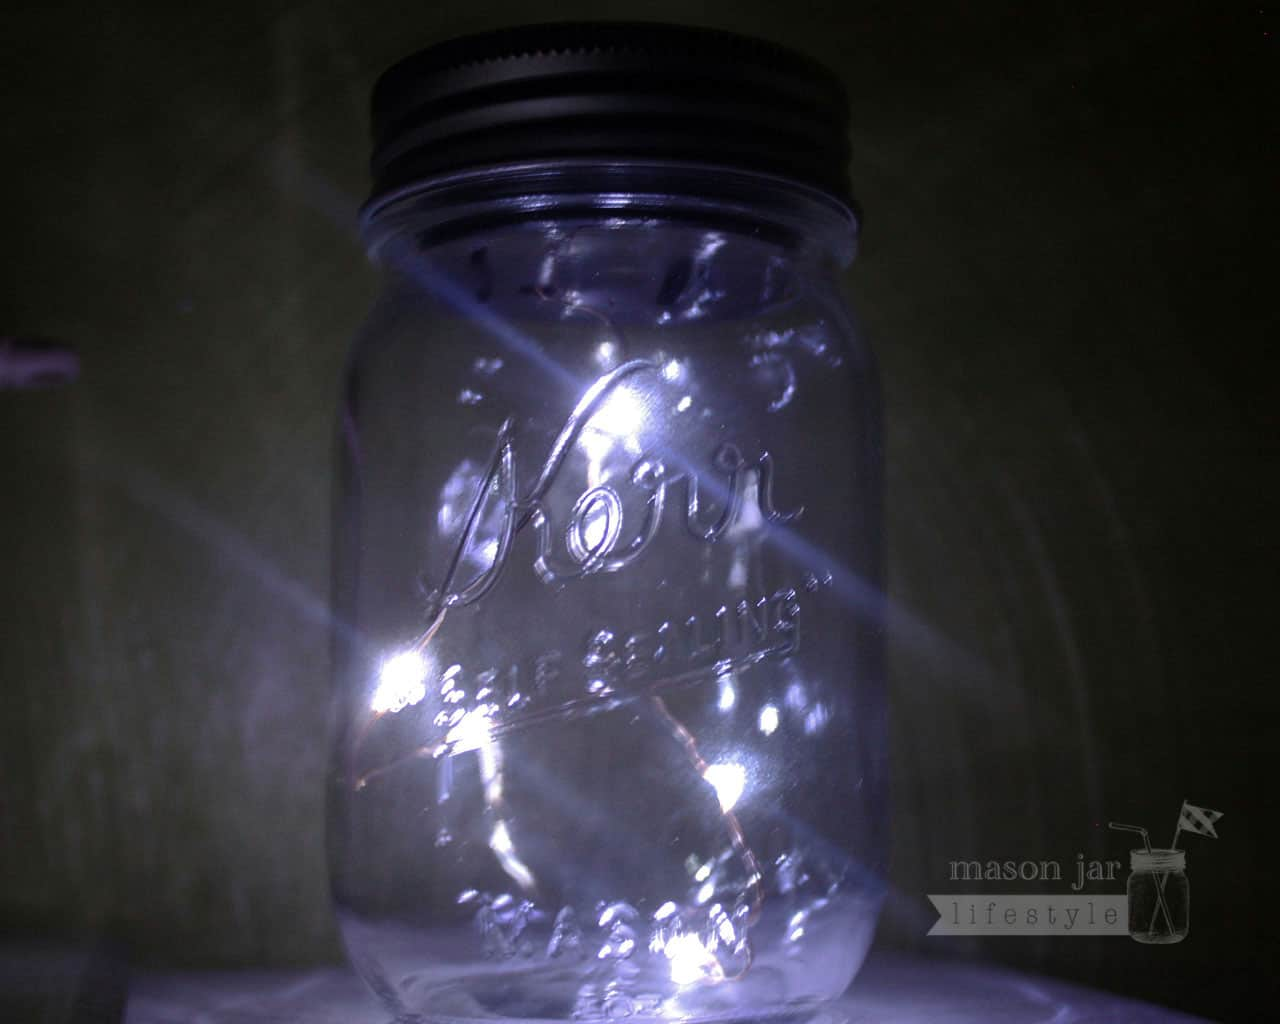 Solar Lid Light Wholesale Part - 16: Mason Jar Solar Light Lid - Angel Tears - 5 LED Lights On A String